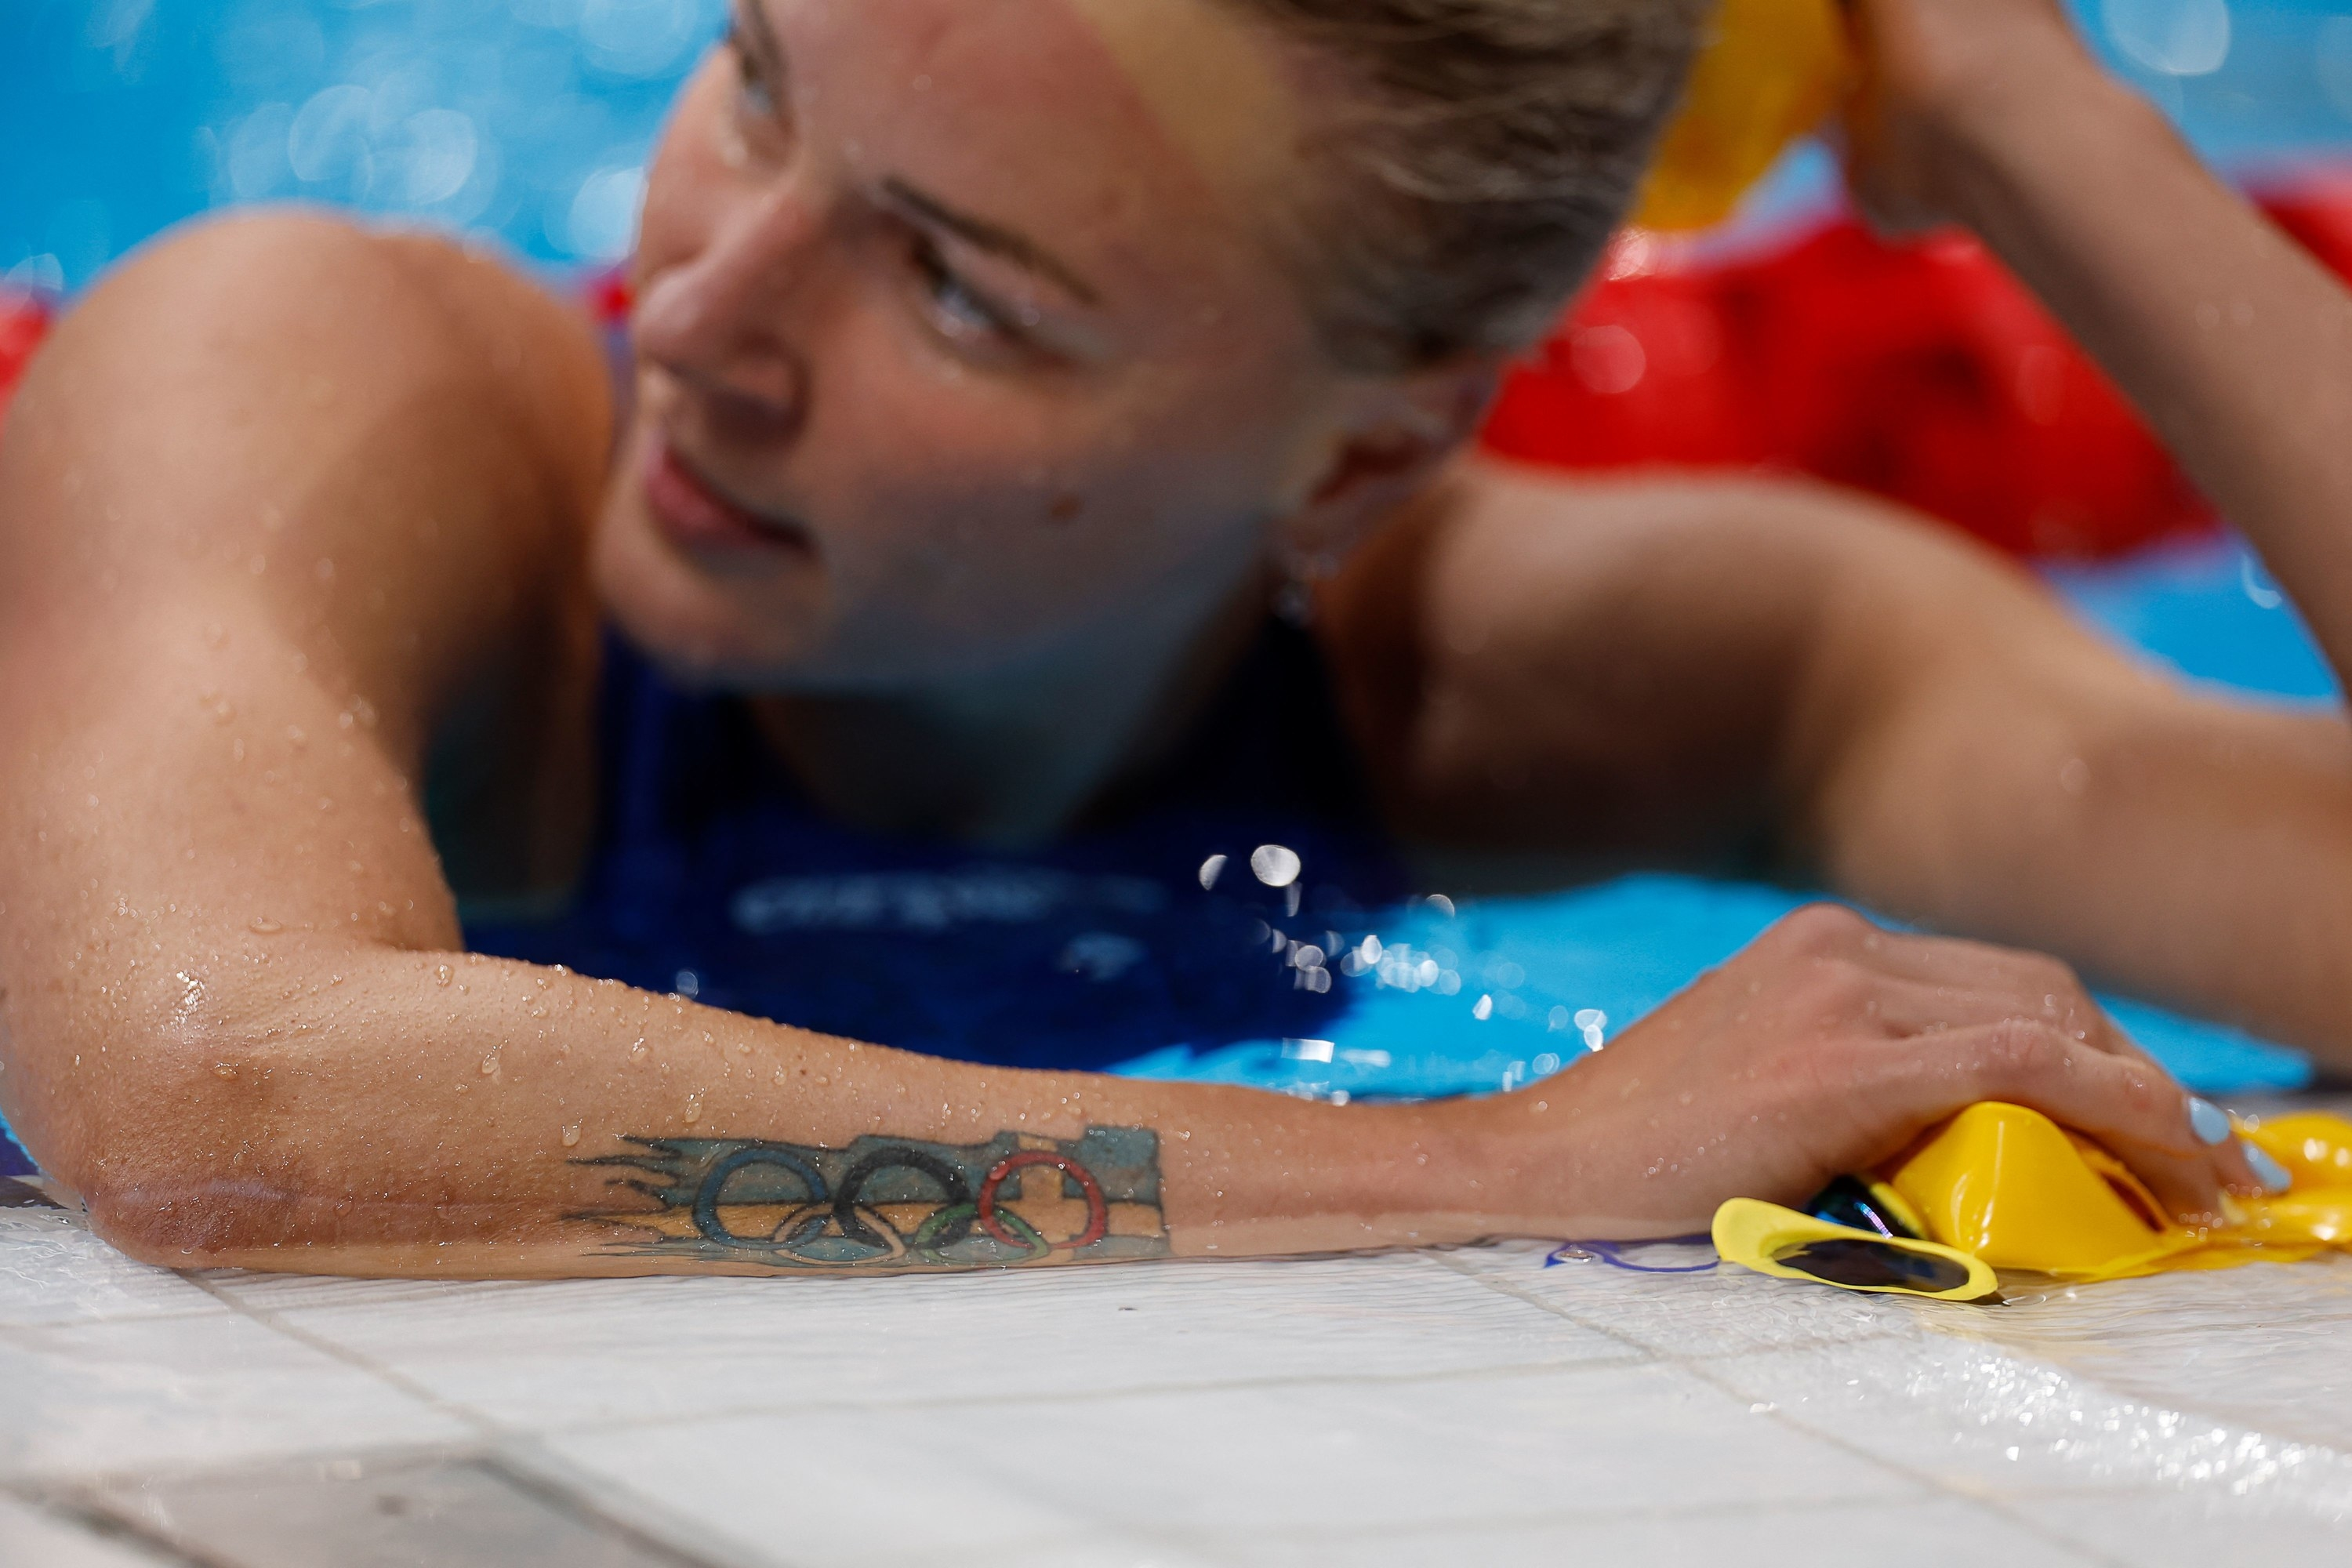 Female Olympic swimmer rests on side of pool.